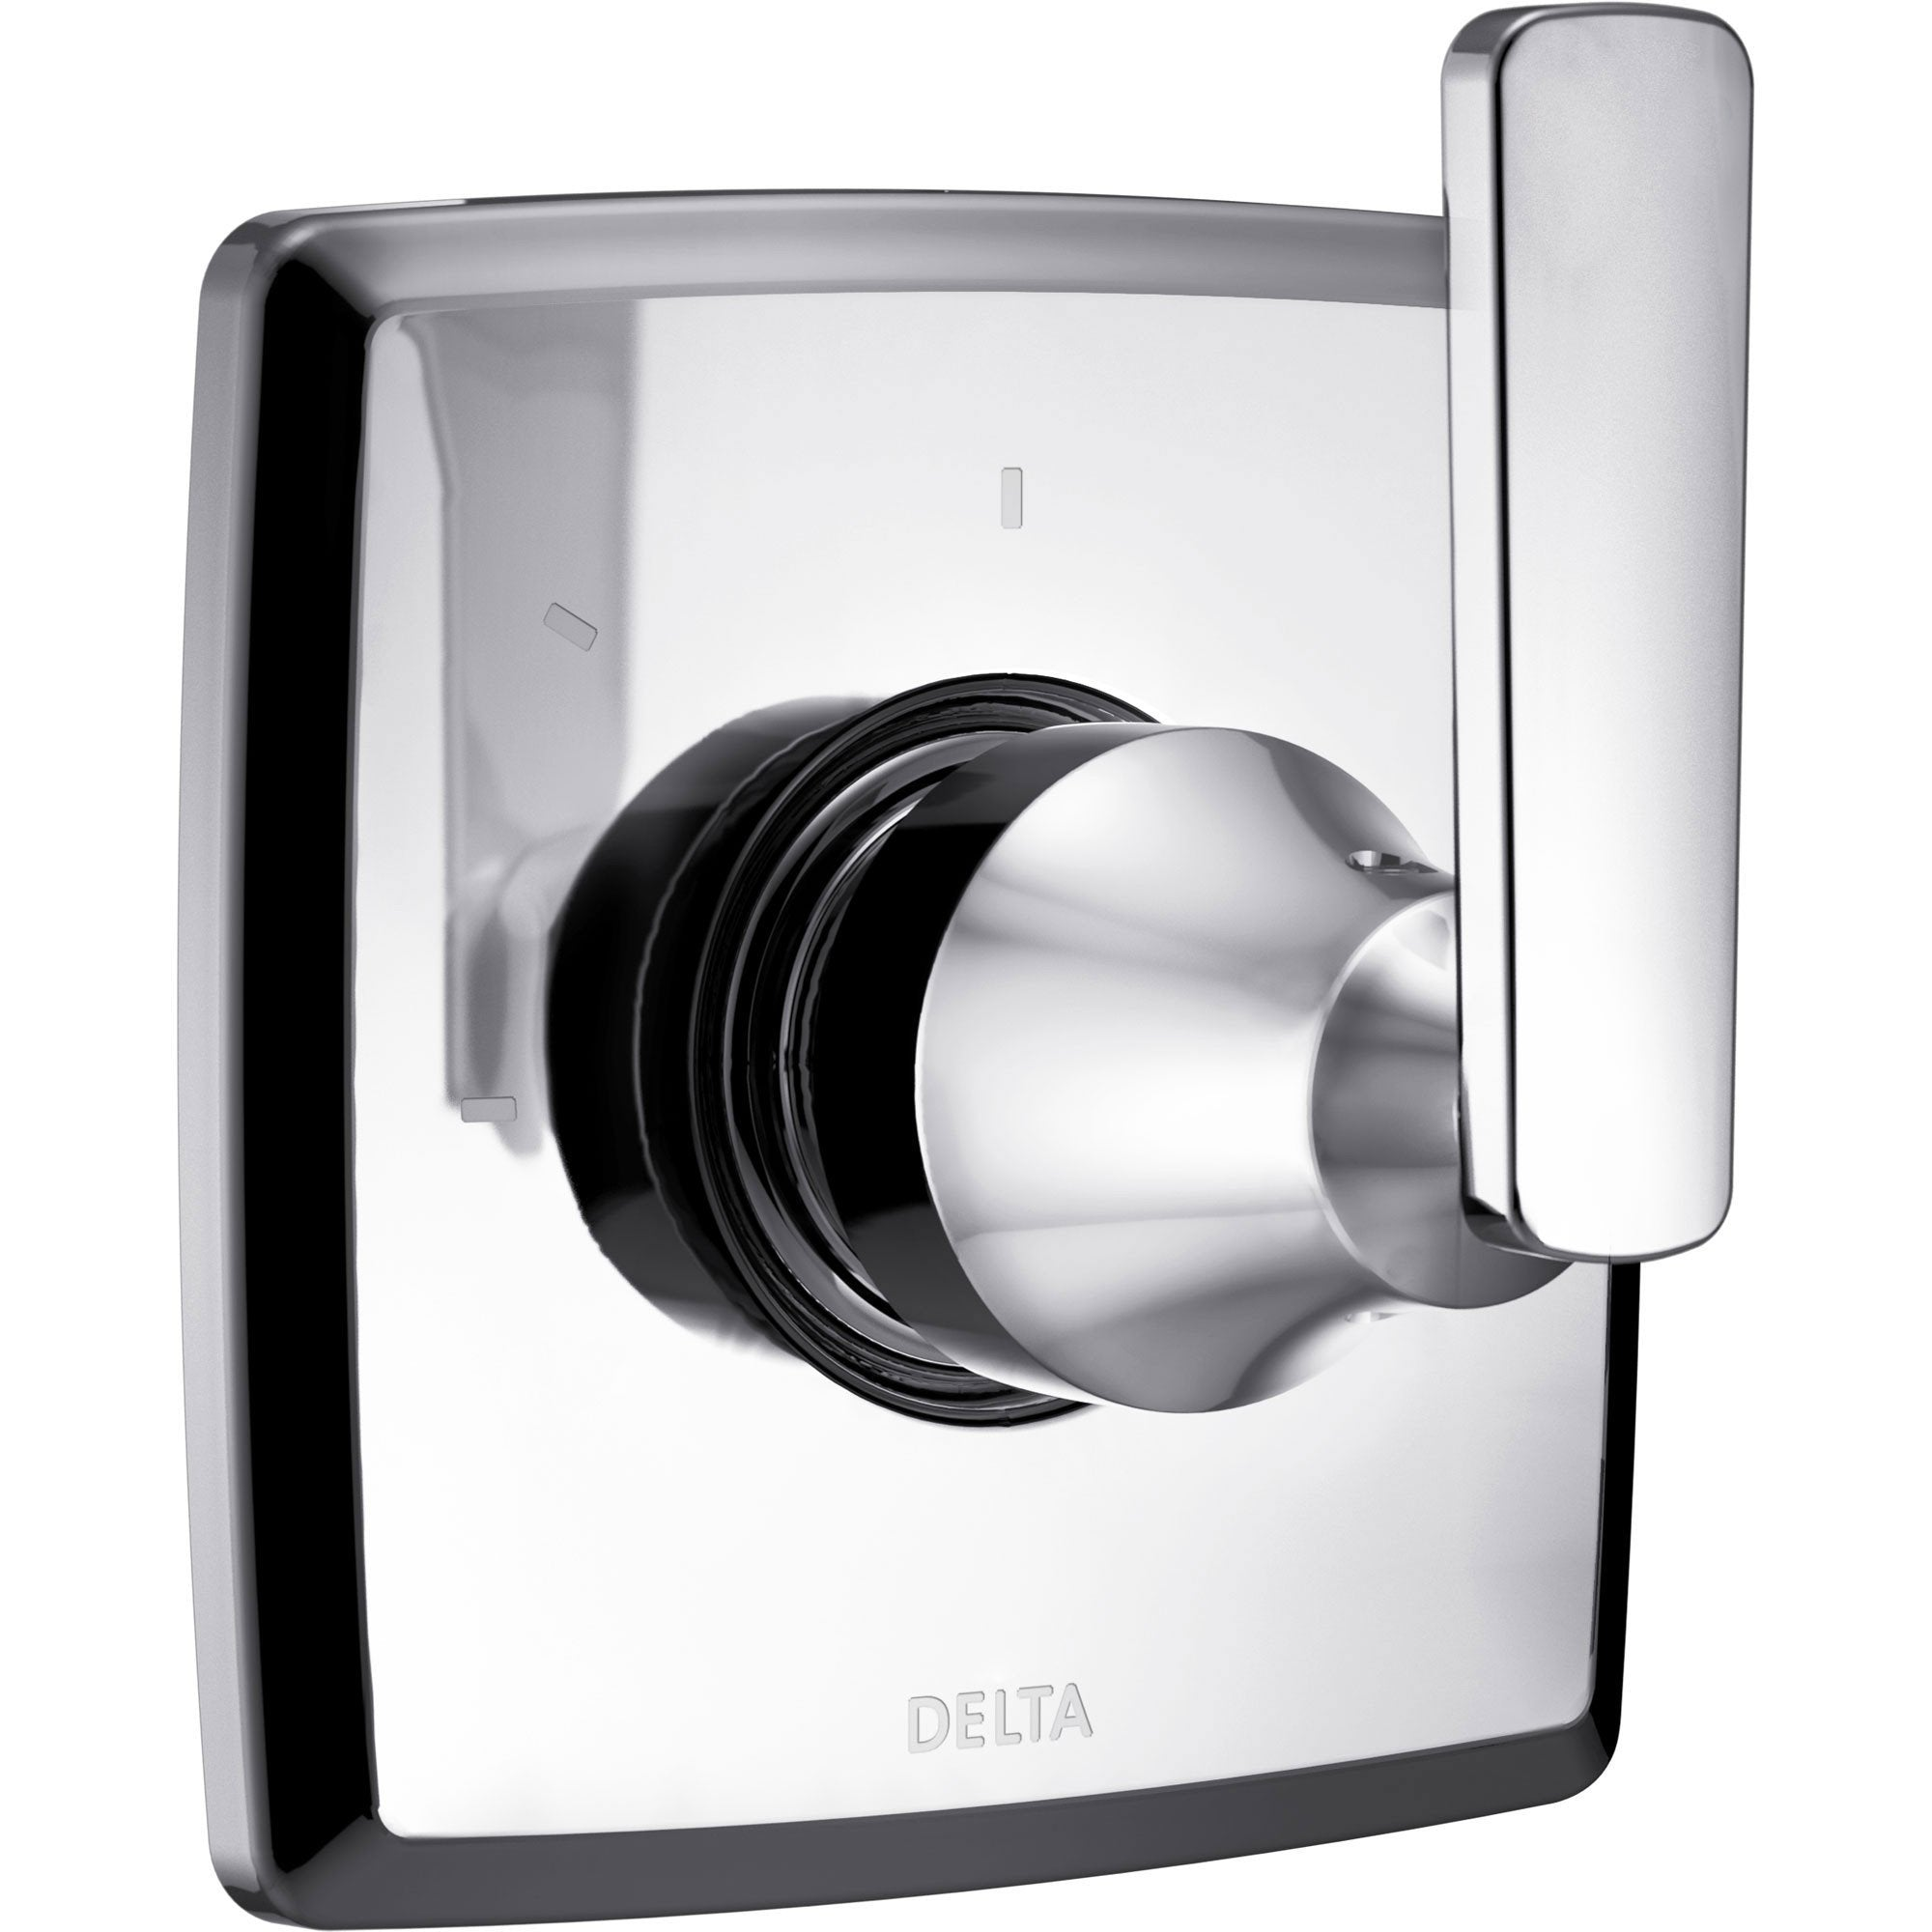 Delta Ashlyn Modern Chrome Finish Single Handle 3-Setting 2-Port Shower Diverter Fixture INCLUDES Rough-in Valve D1297V